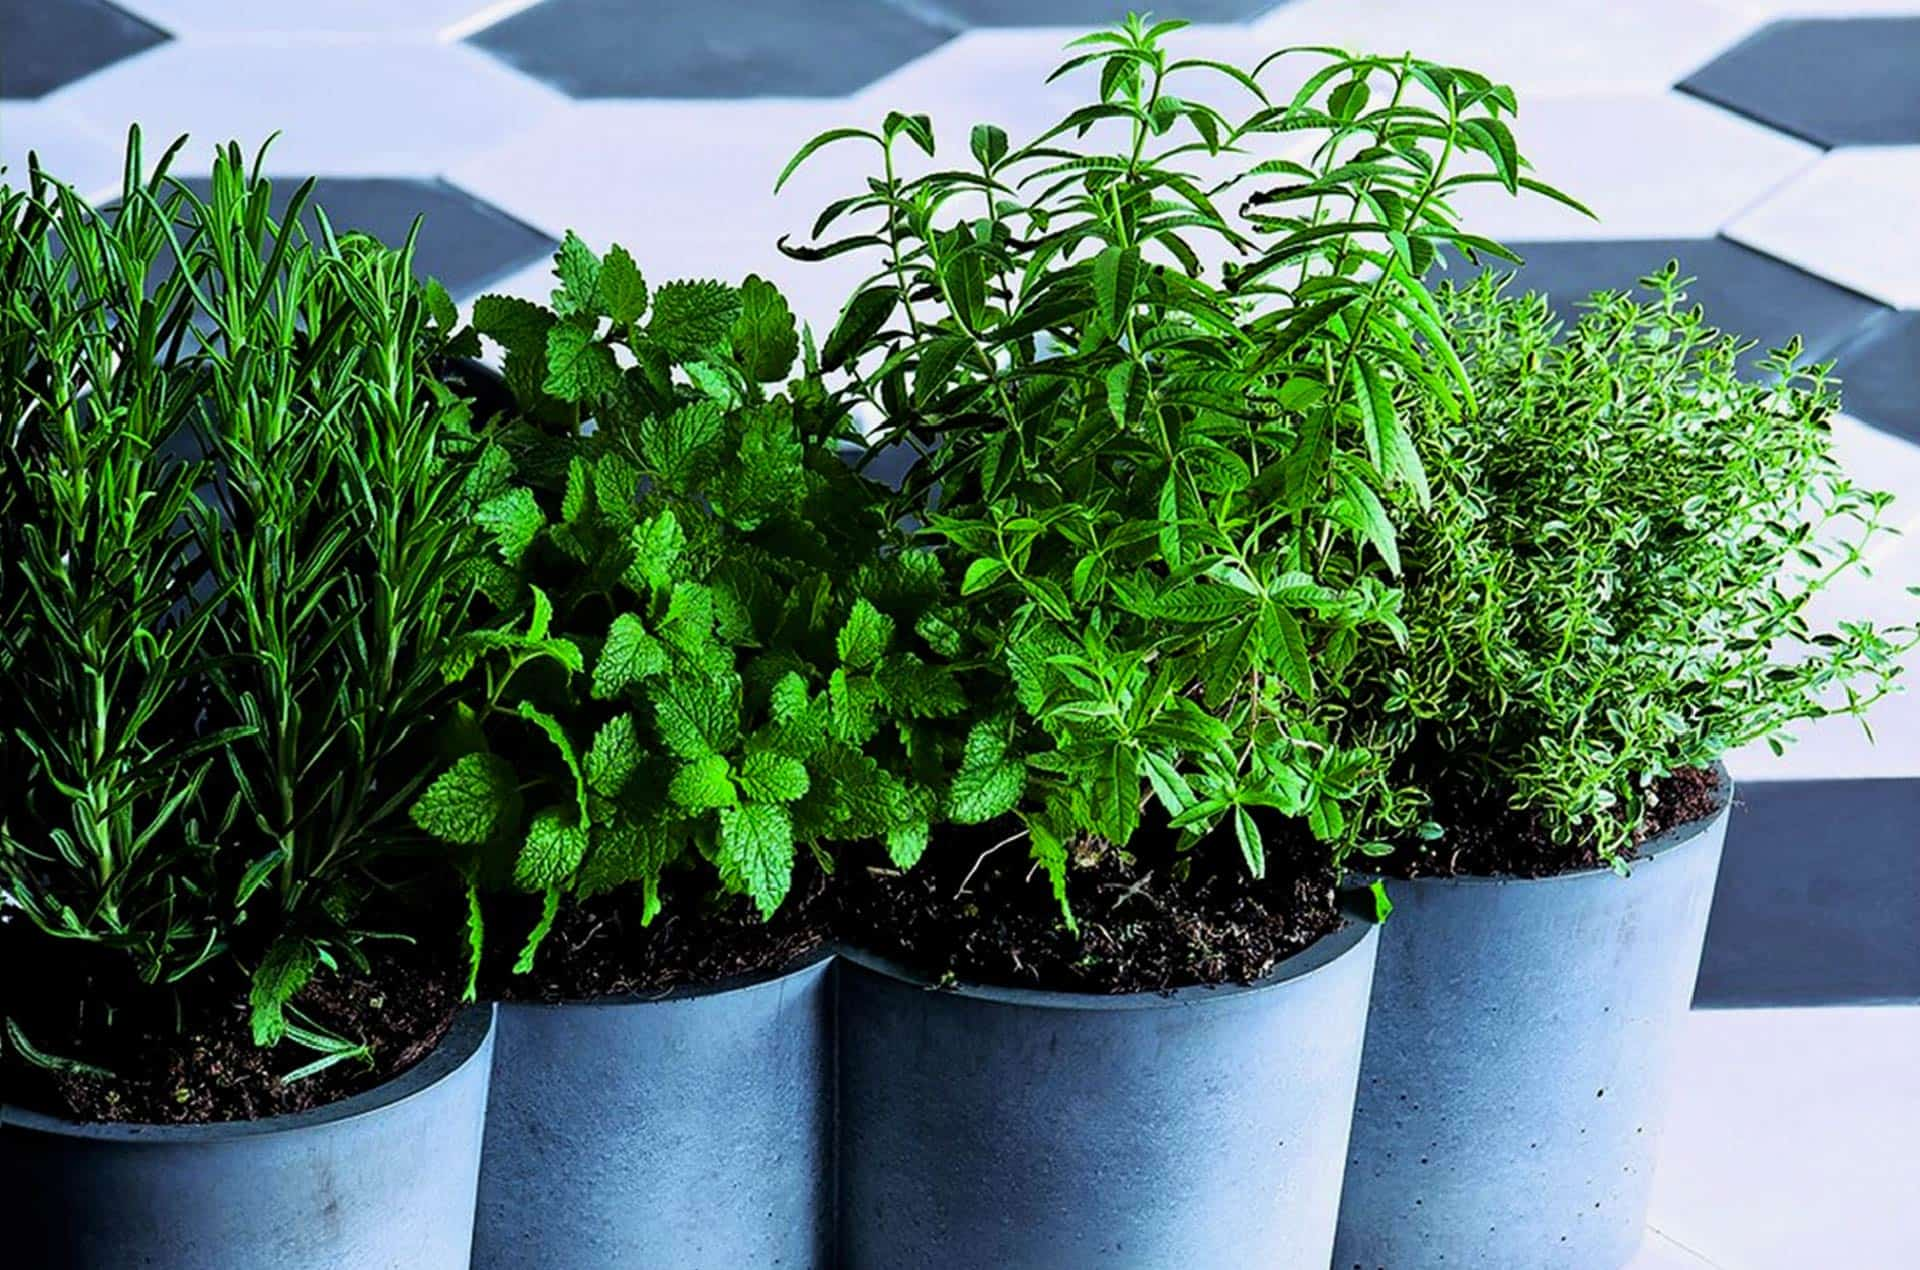 Pot plantes en béton, POTPOT by Konstantin Slawinski-PARIDEO design durable